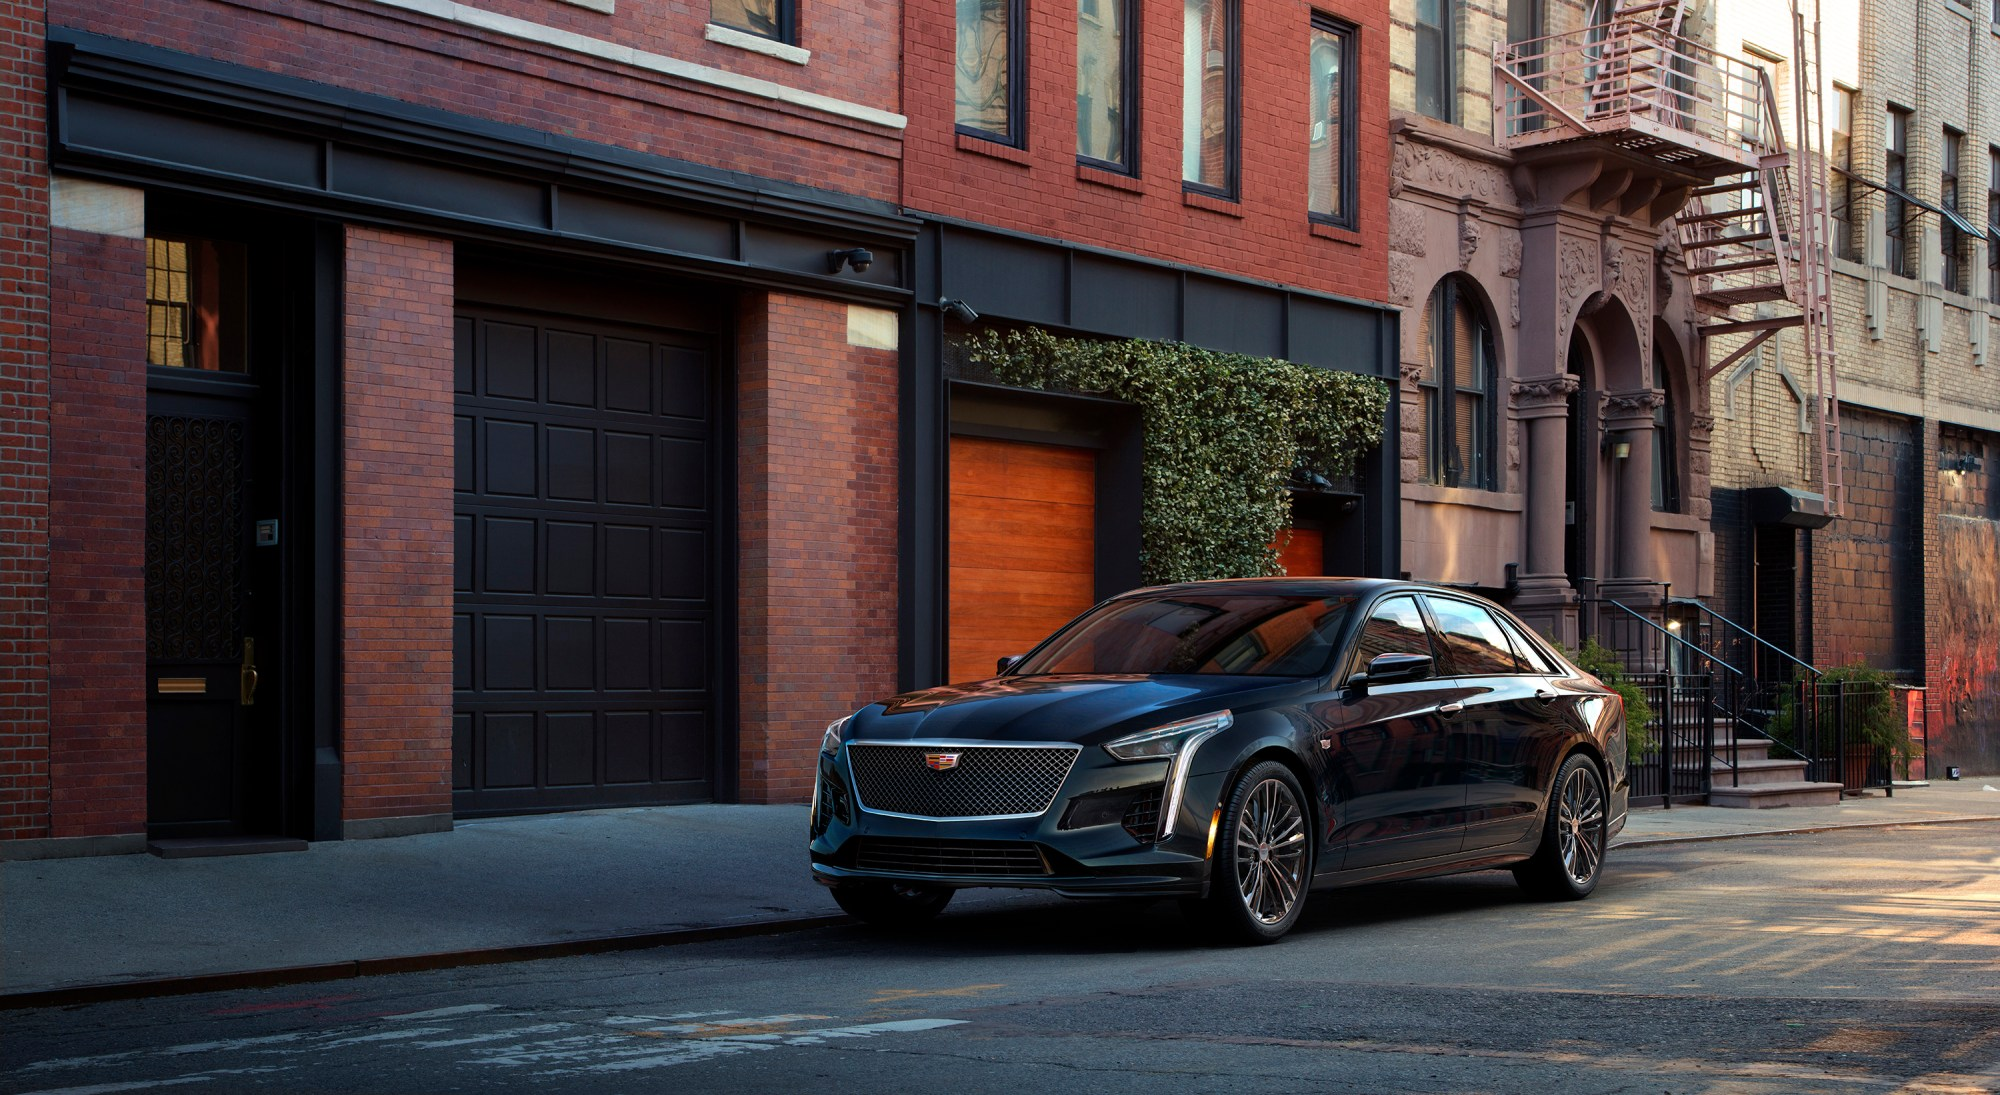 hight resolution of cadillac proves performance sedans aren t dead as the 2019 ct6 v sells out in a few hours